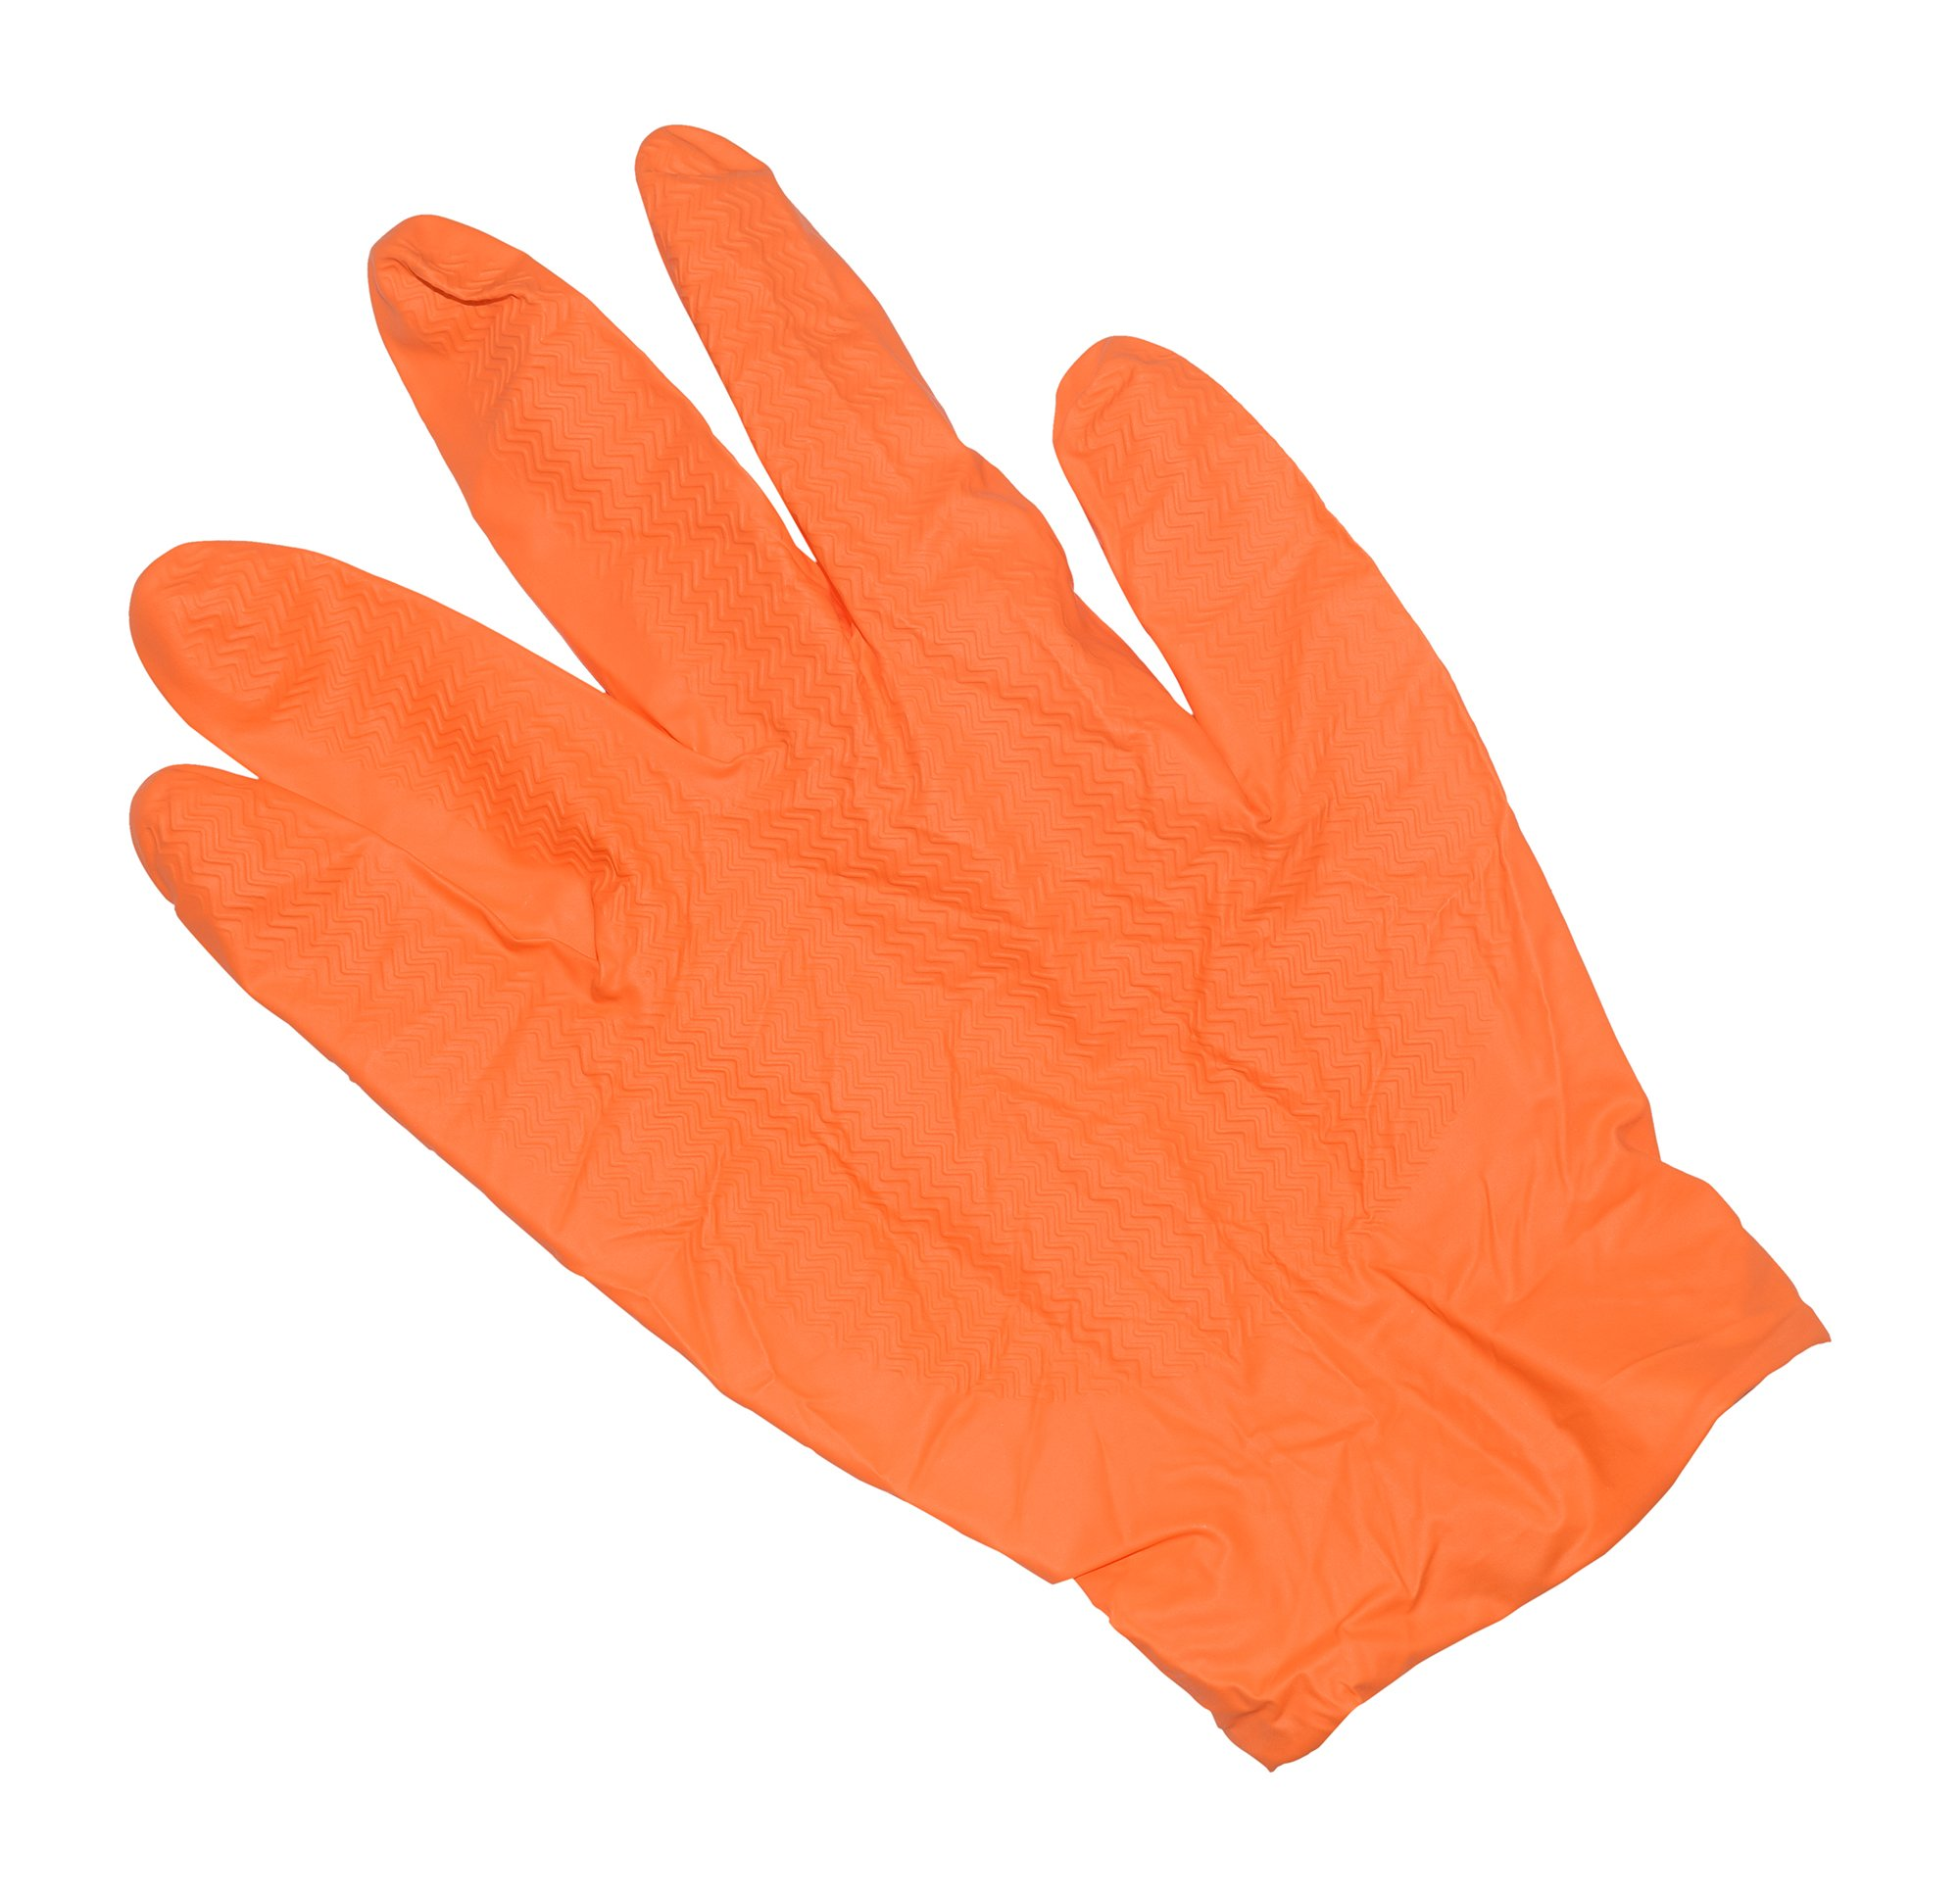 Emerald 04001 Orange MAX-Grip Powder Free Nitrile Glove 7 Mil Disposable with Beaded Cuff. 50 Glovesper Box, 10 Boxes, Total 500 Gloves Size X-Large, by Emerald